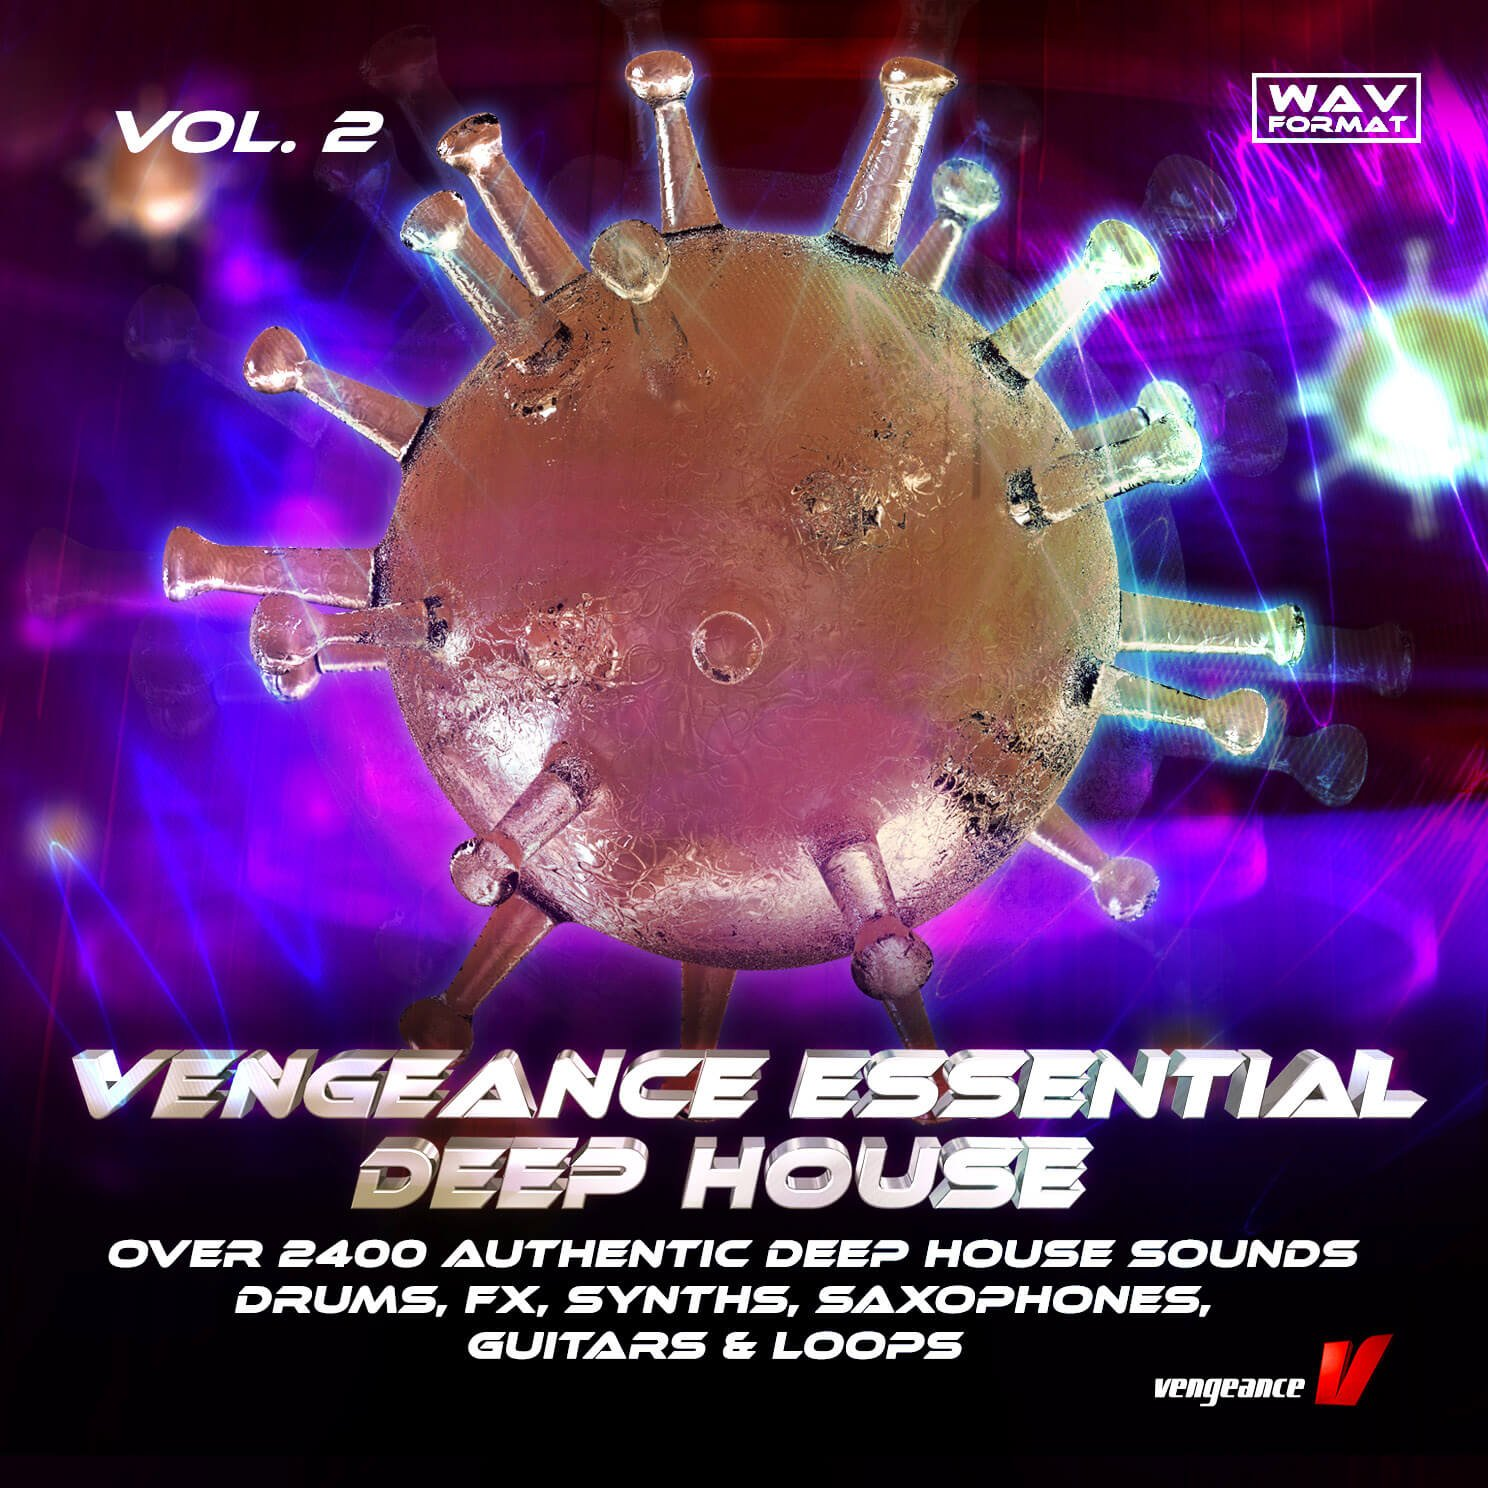 Refx releases vengeance essential deep house vol 2 for Very deep house music